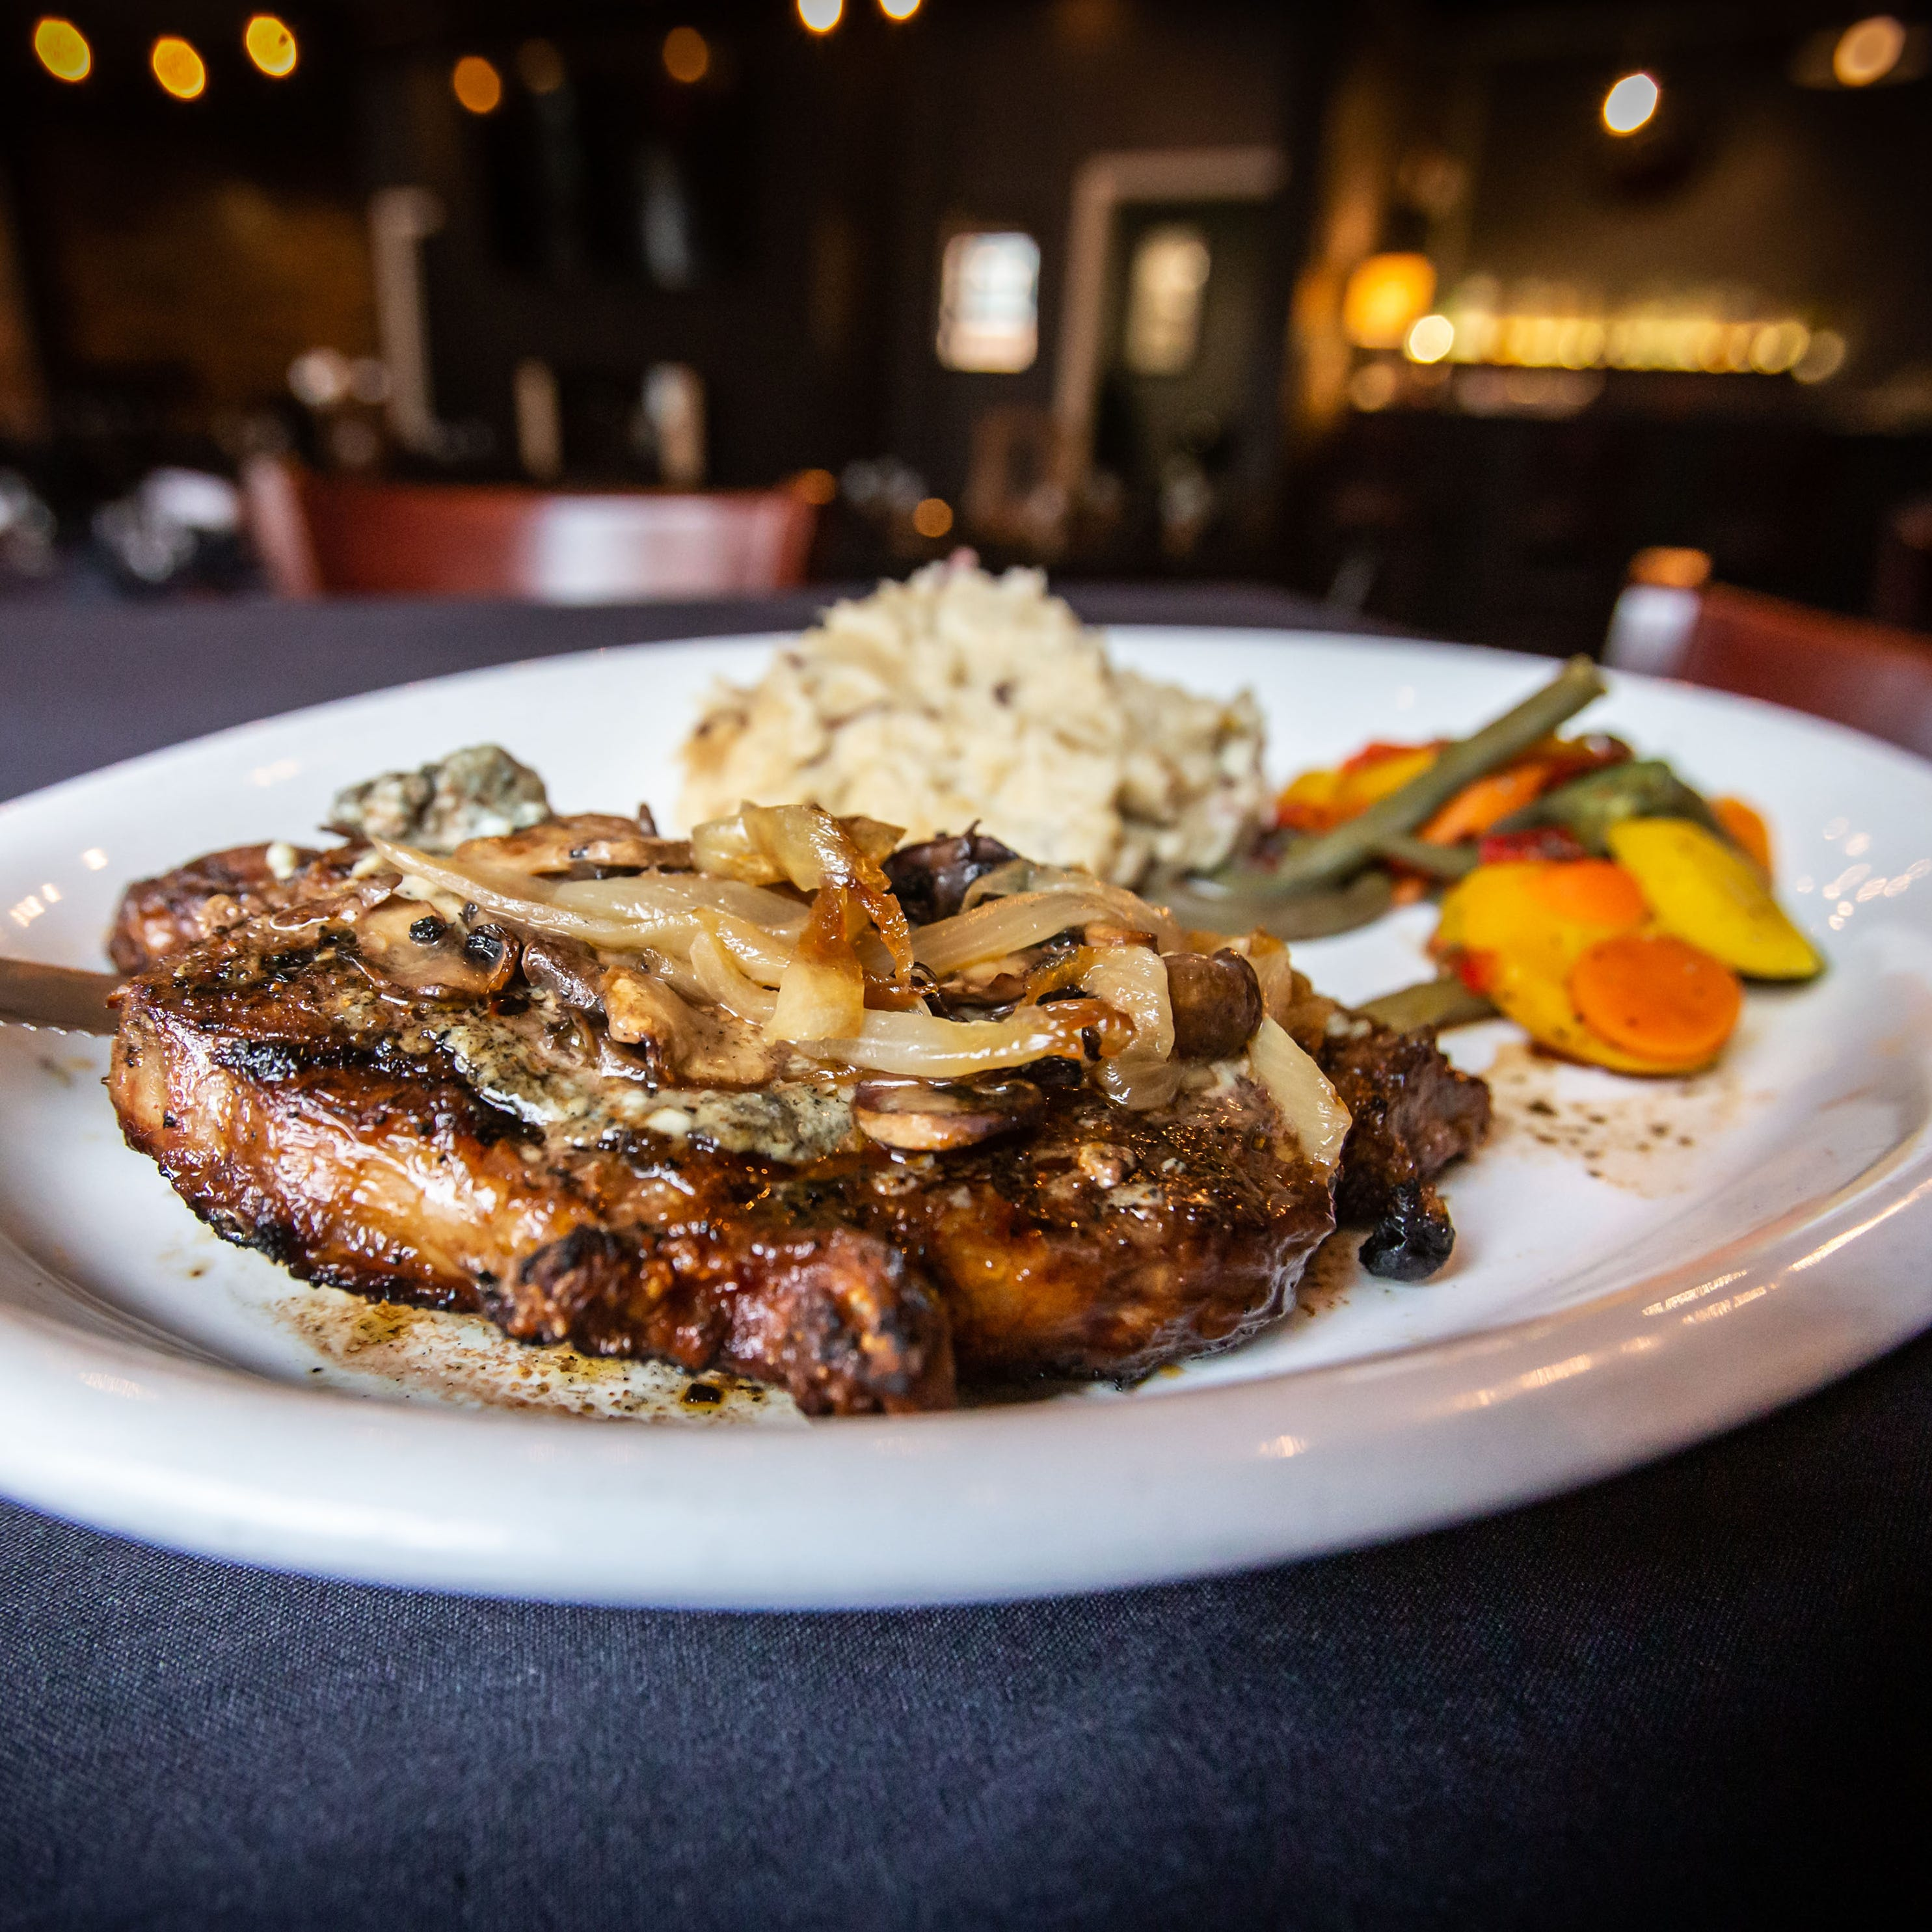 The signature Main Mill Steak, which features a...